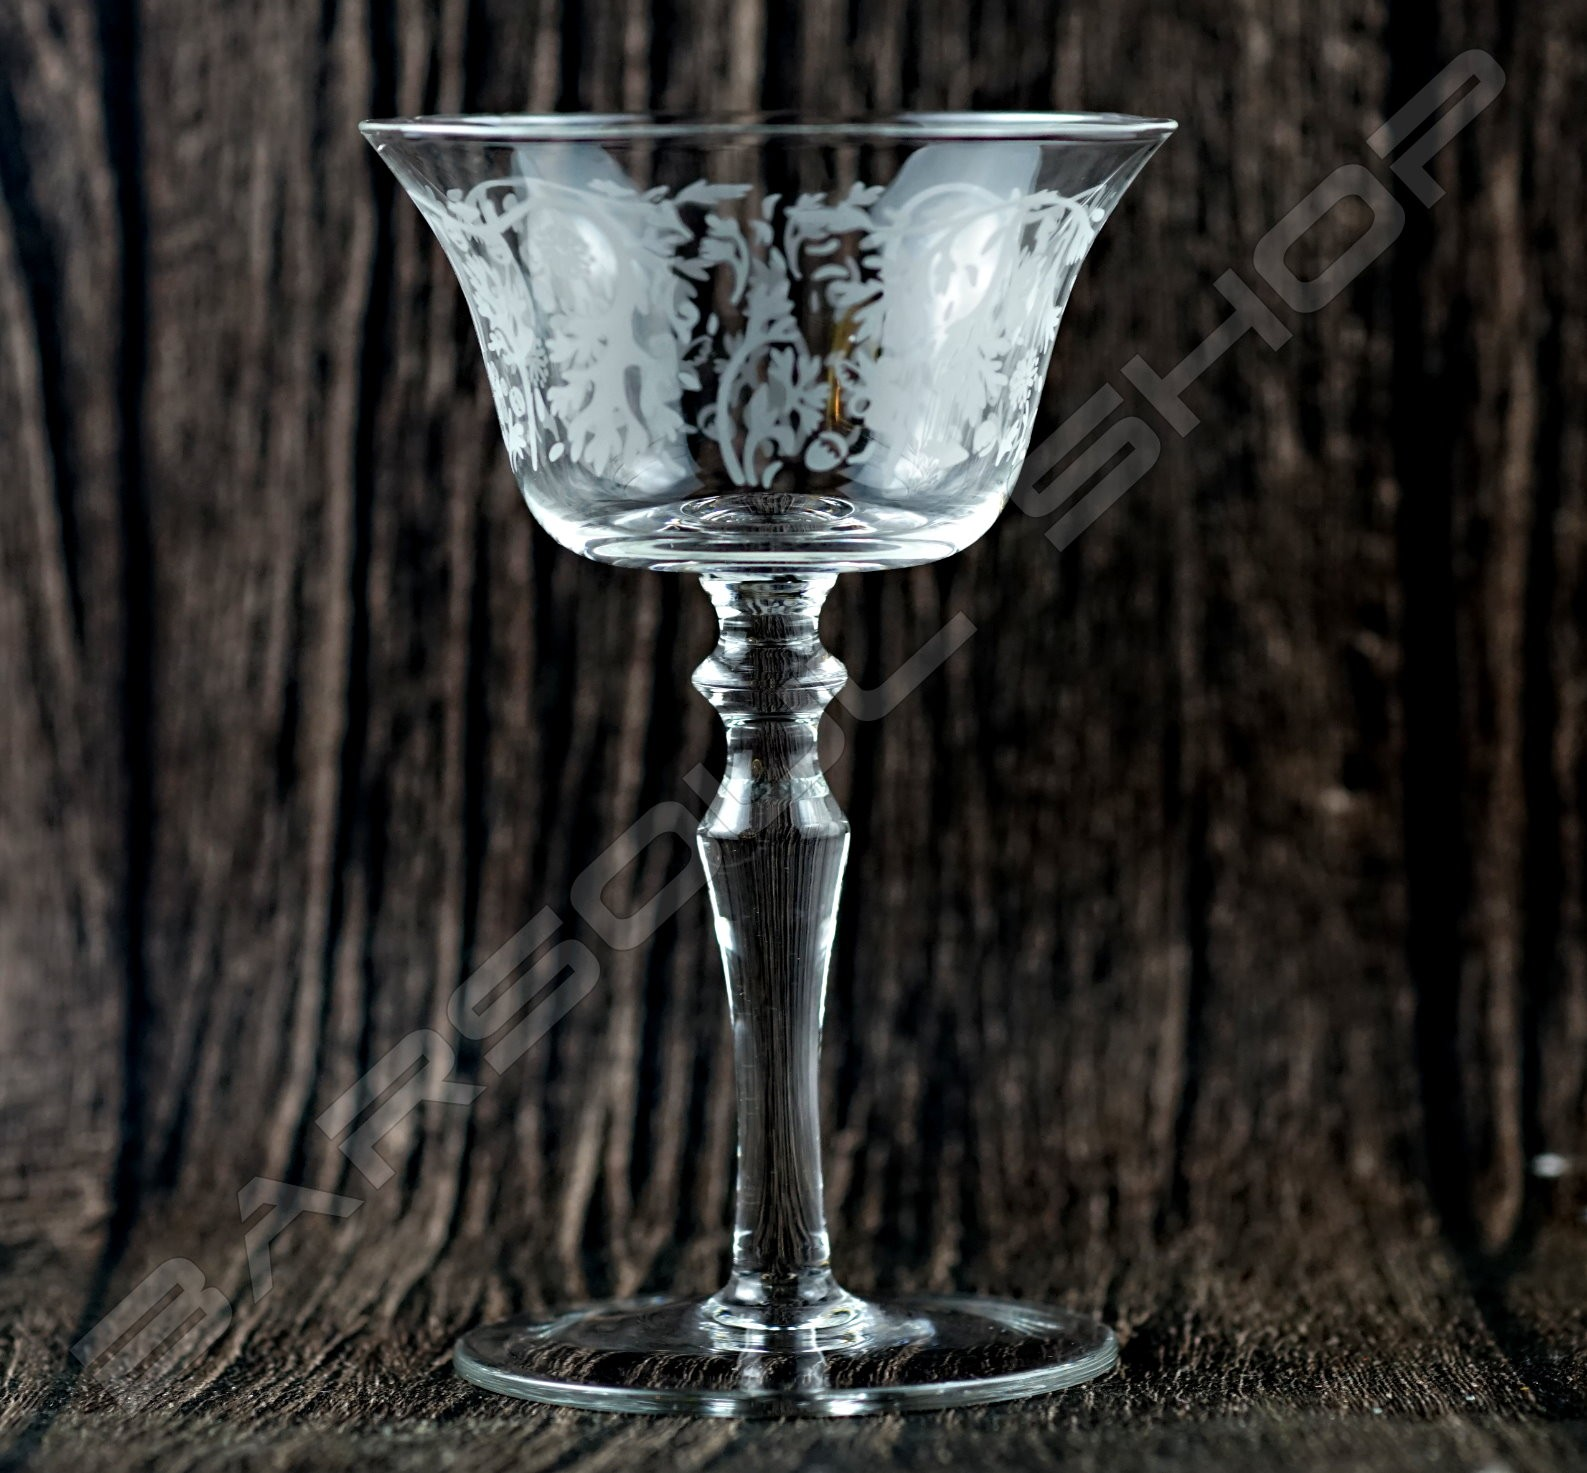 芫荽雞尾酒杯135ml Coriandrum sativum Lace cocktail Glass